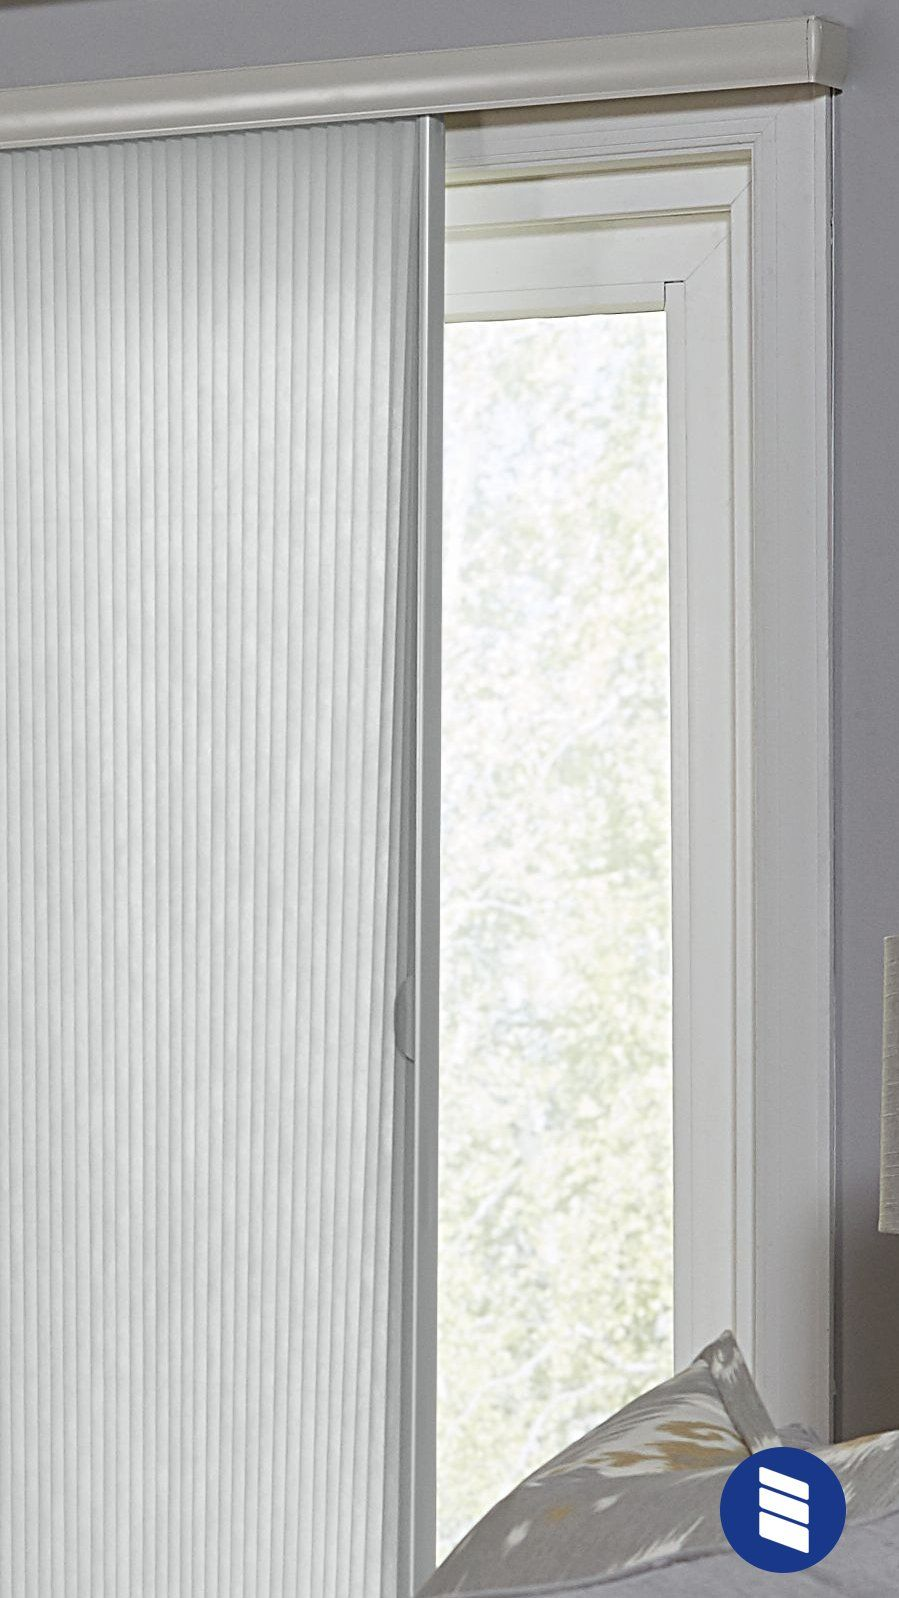 The Best Vertical Blinds Alternatives For Sliding Glass Doors Blinds Com Vertical Blinds Alternative Sliding Glass Door Window Sliding Glass Door Shutters